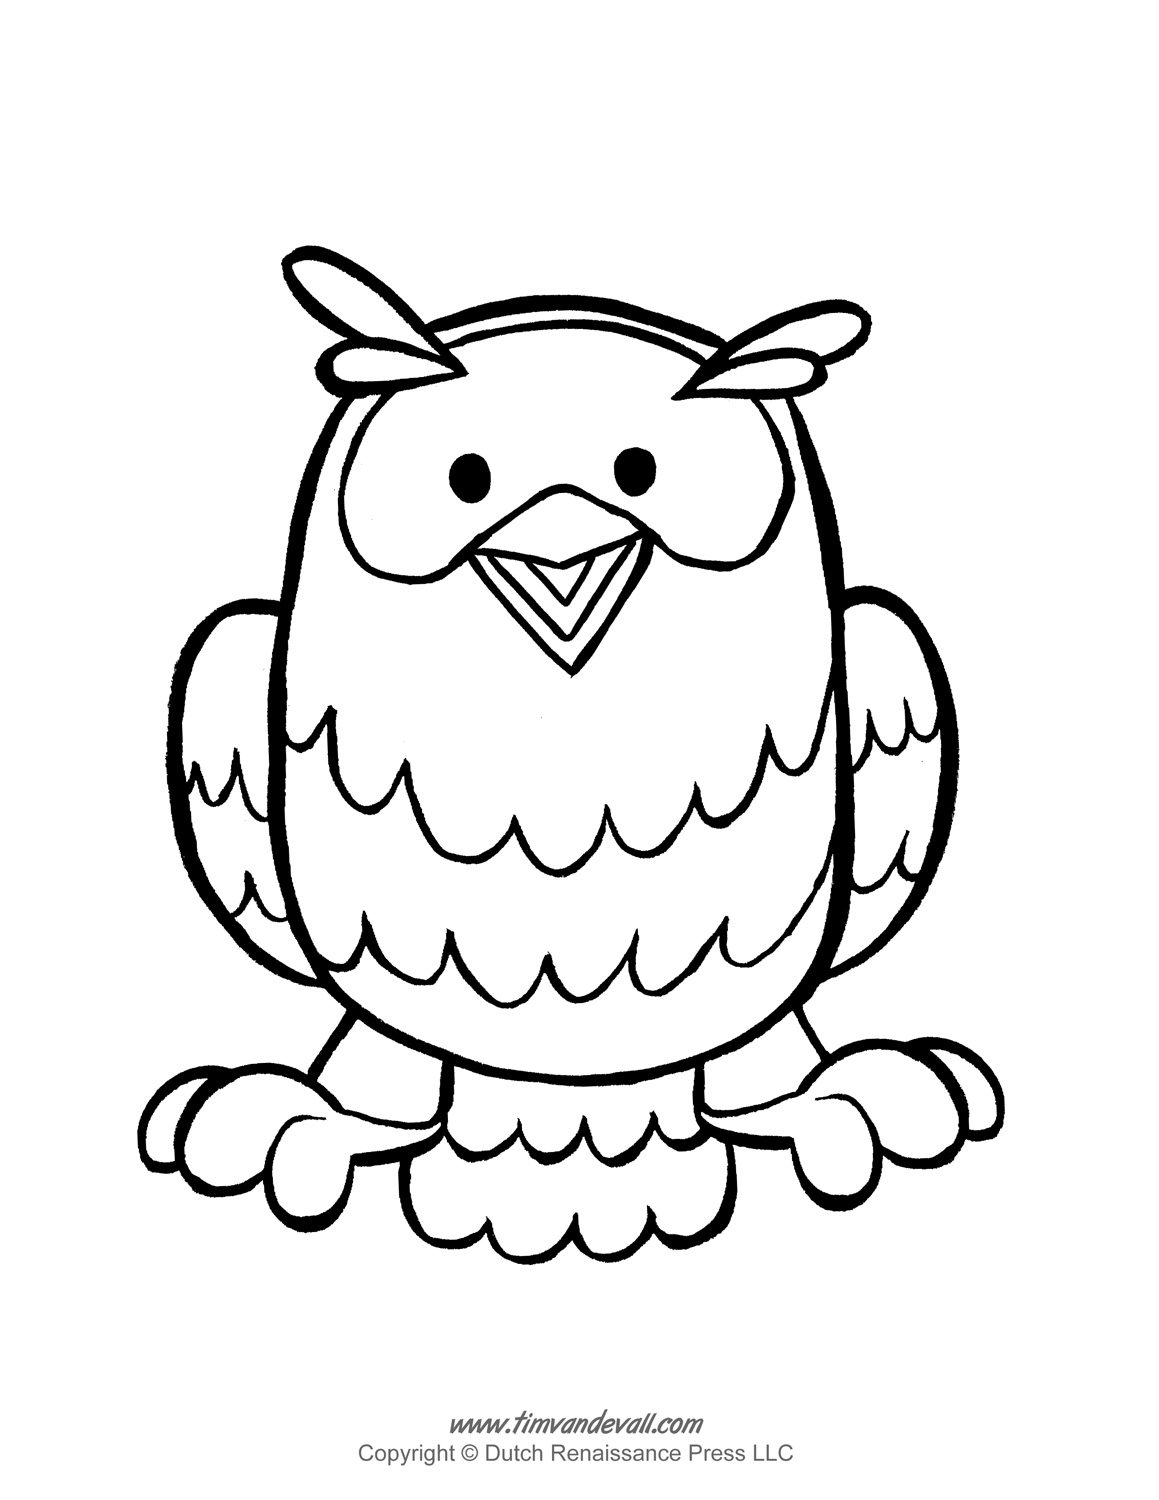 Printable Owl Template Owl Coloring Pages And Owl Clipart